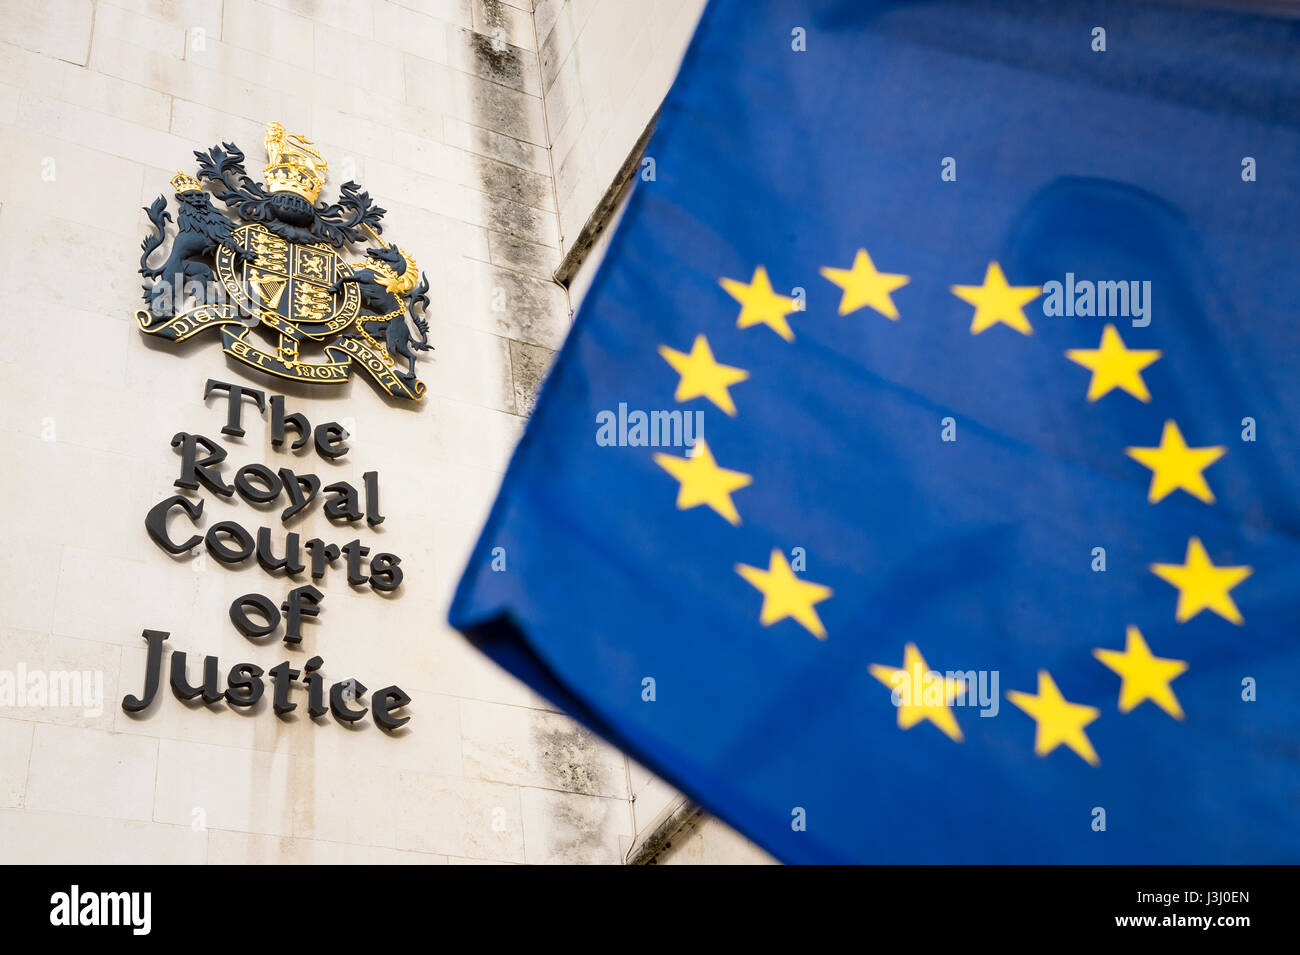 EU European Union flag flying in bright sun in front of the Royal Courts of Justice public building in London, United - Stock Image